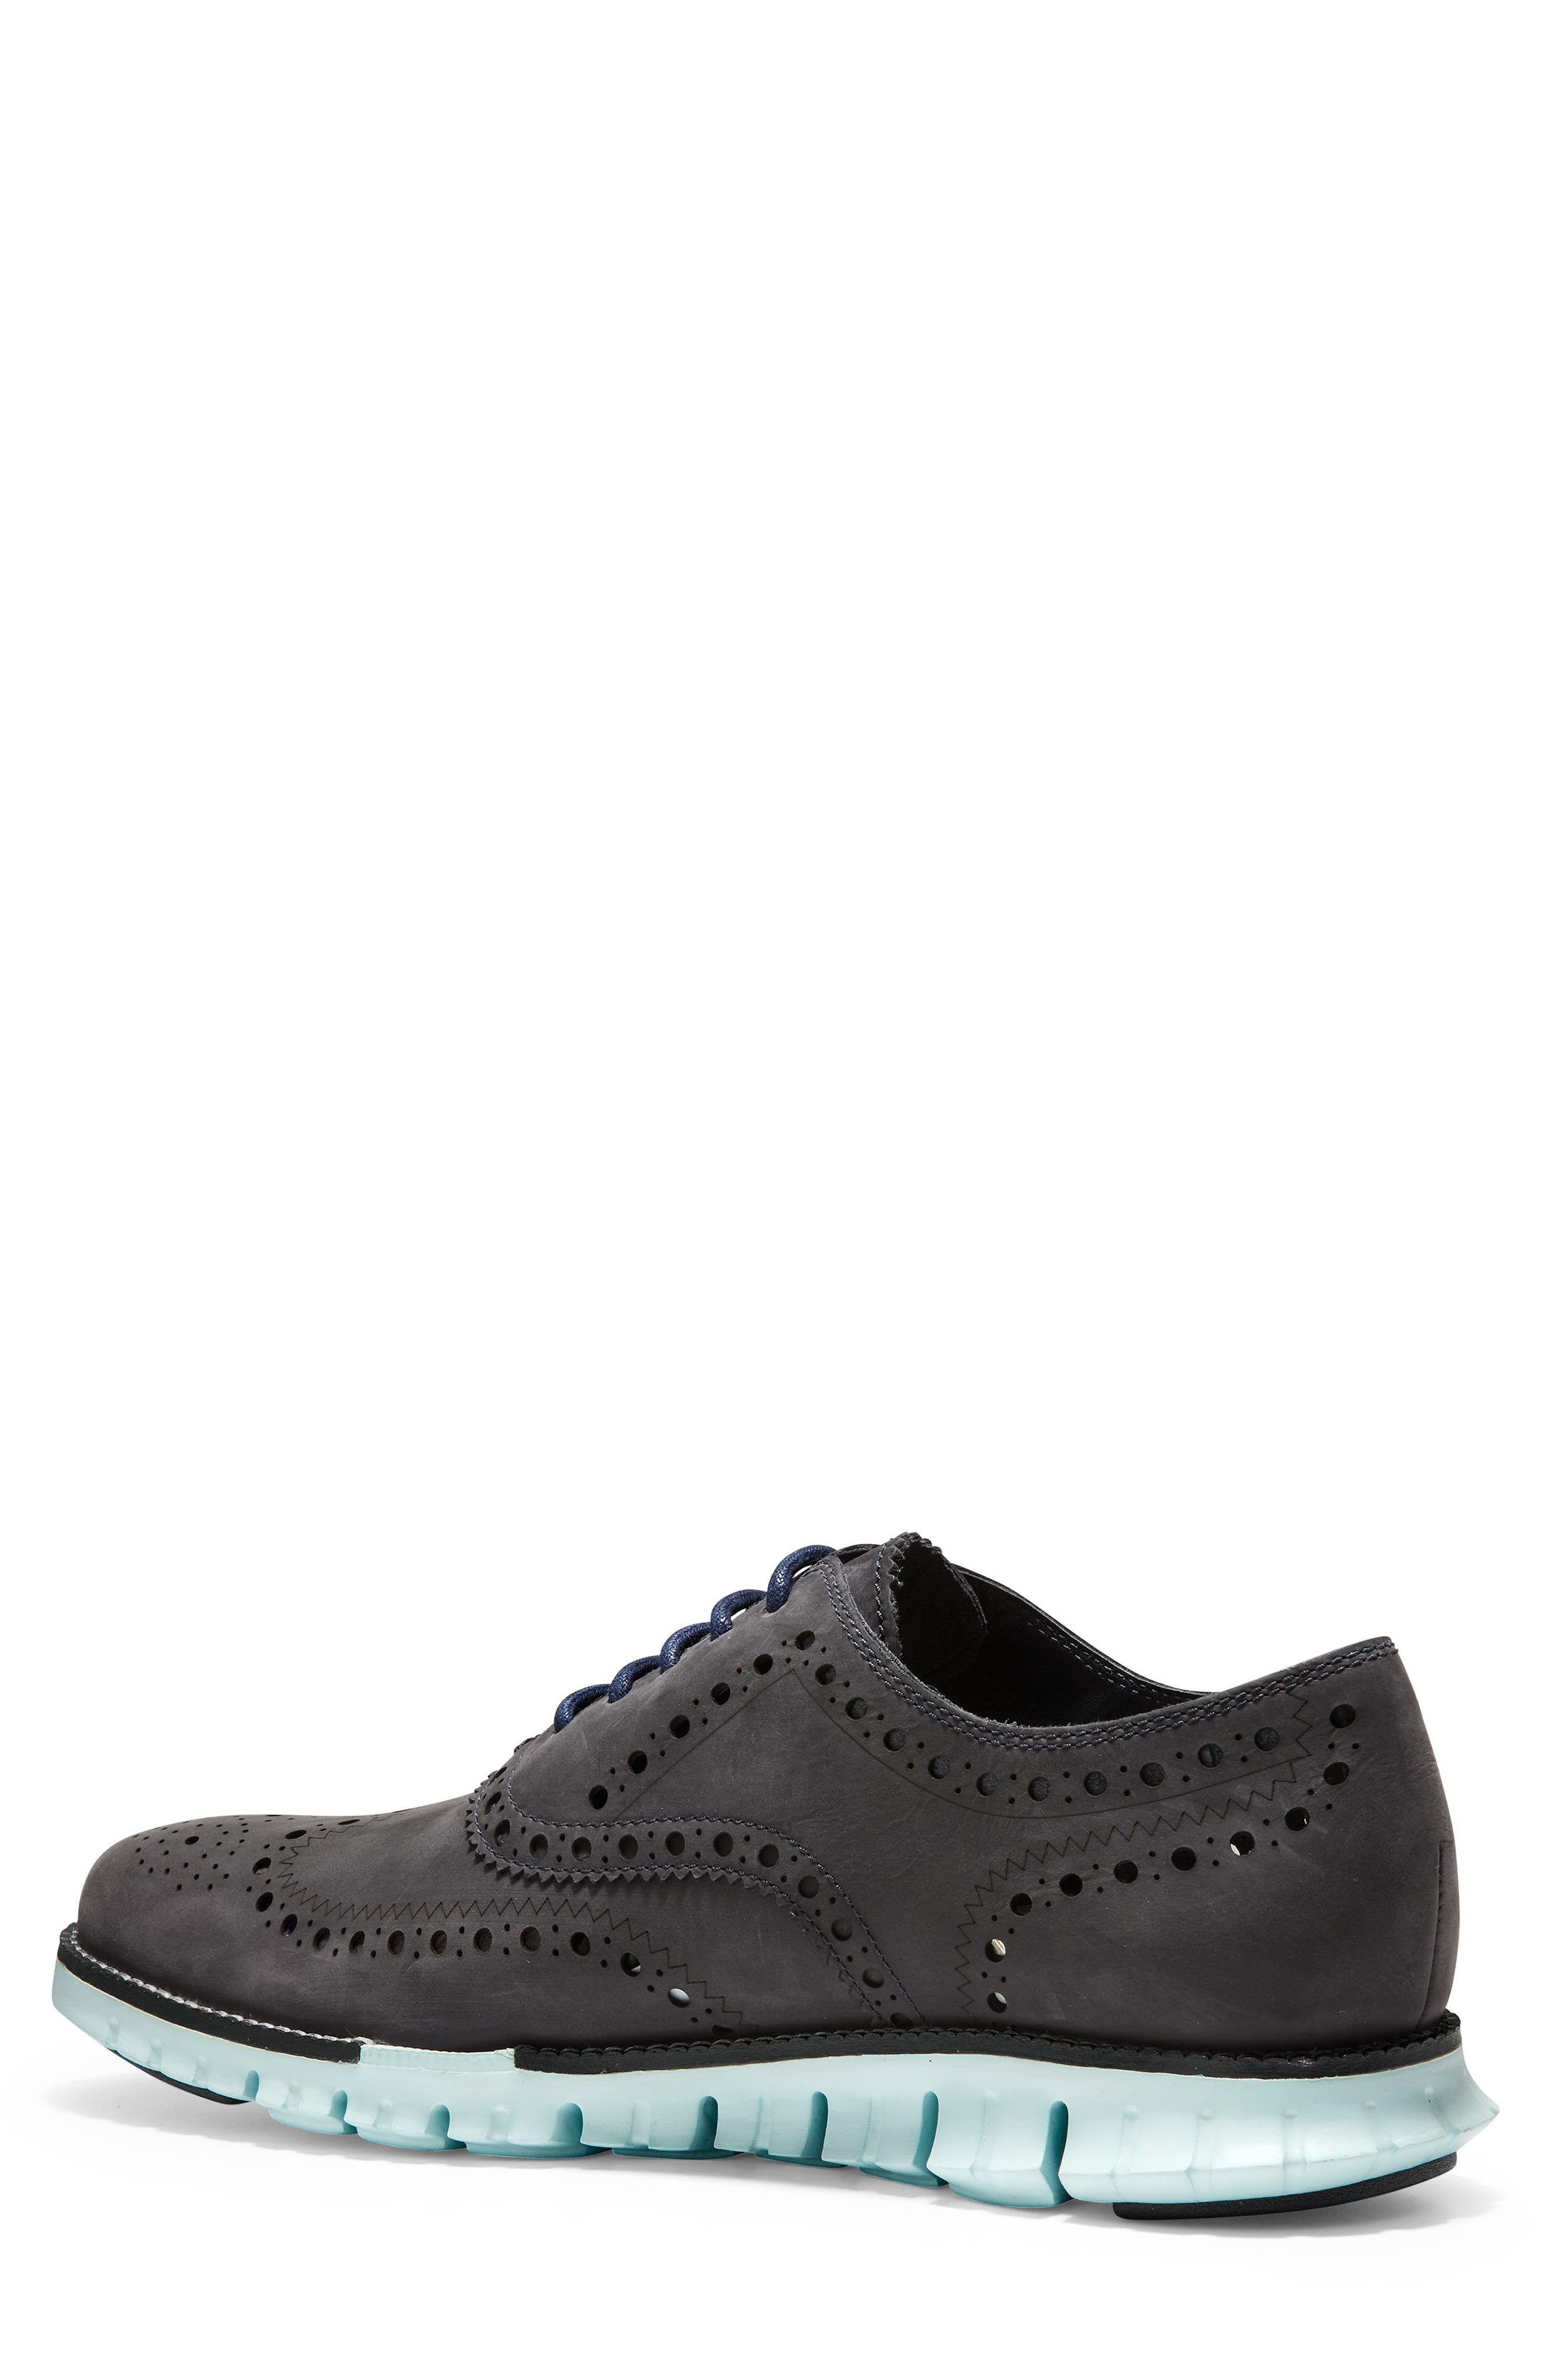 'ZeroGrand' Wingtip Oxford,                             Alternate thumbnail 2, color,                             PEACOAT/ MIST